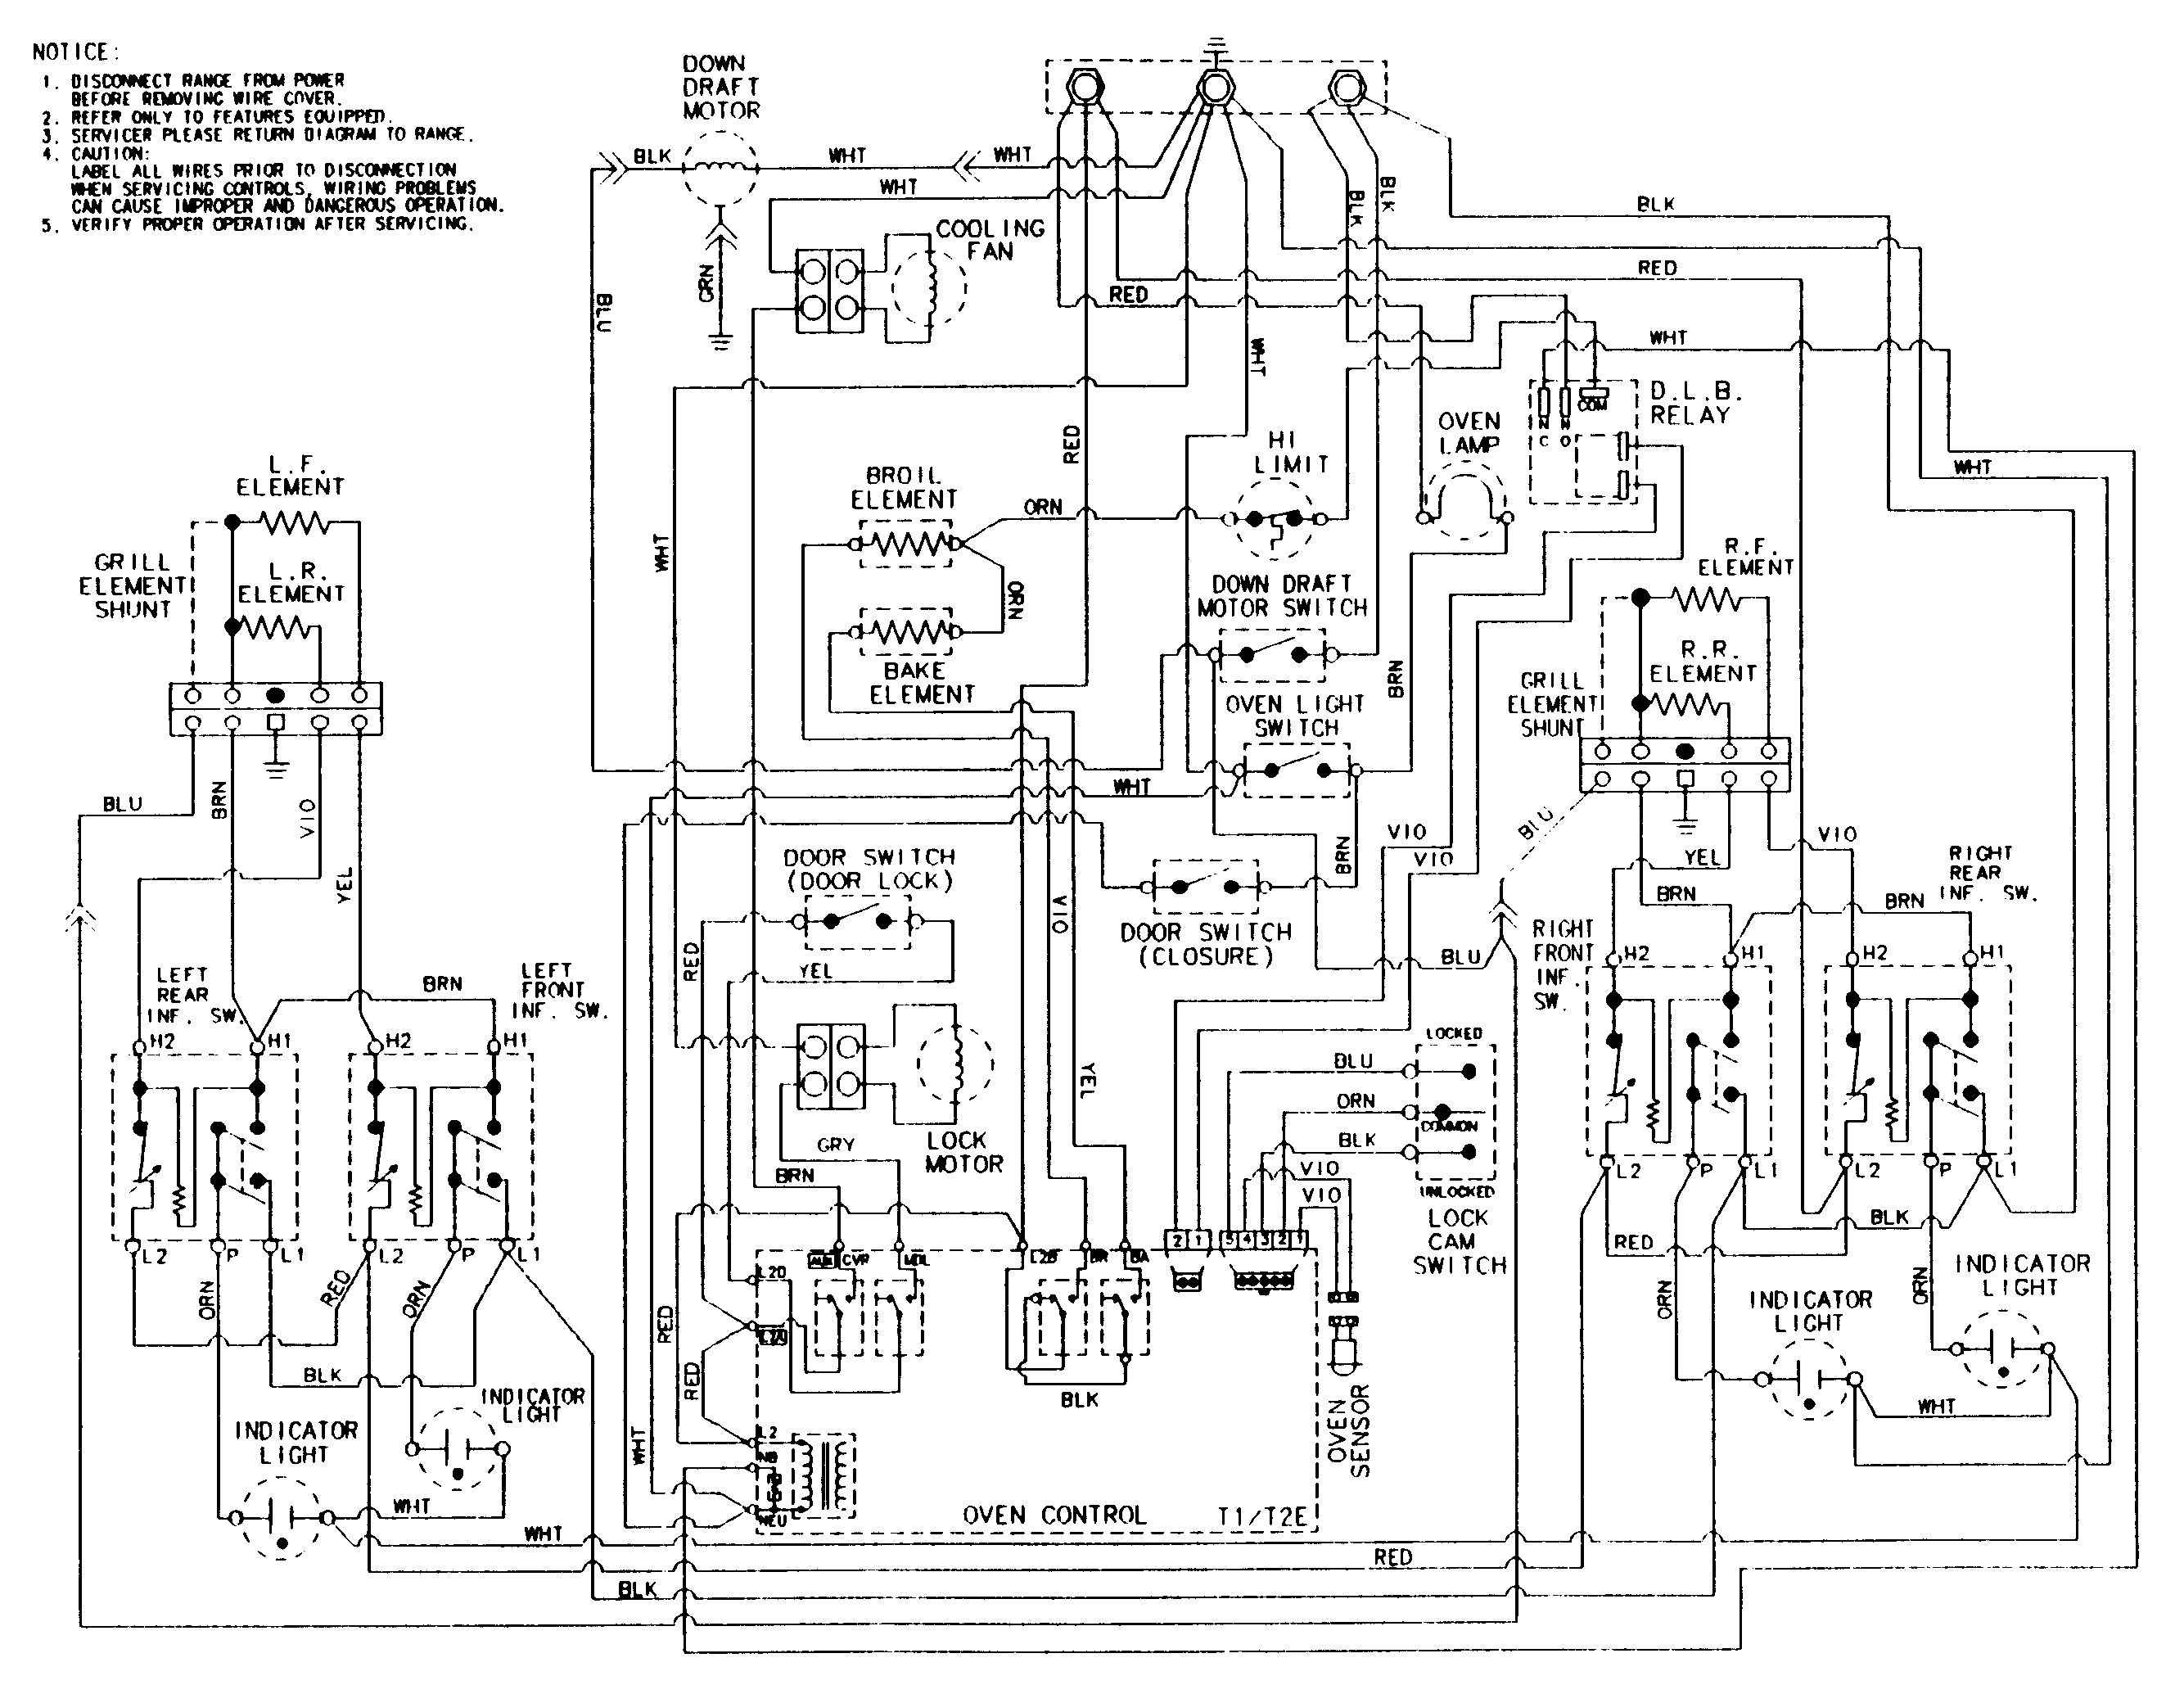 Wiring Diagram Of Whirlpool Refrigerator Will Be A Stove Jenn Air Sve47100b Electric Slide In Range Timer Model Numbers